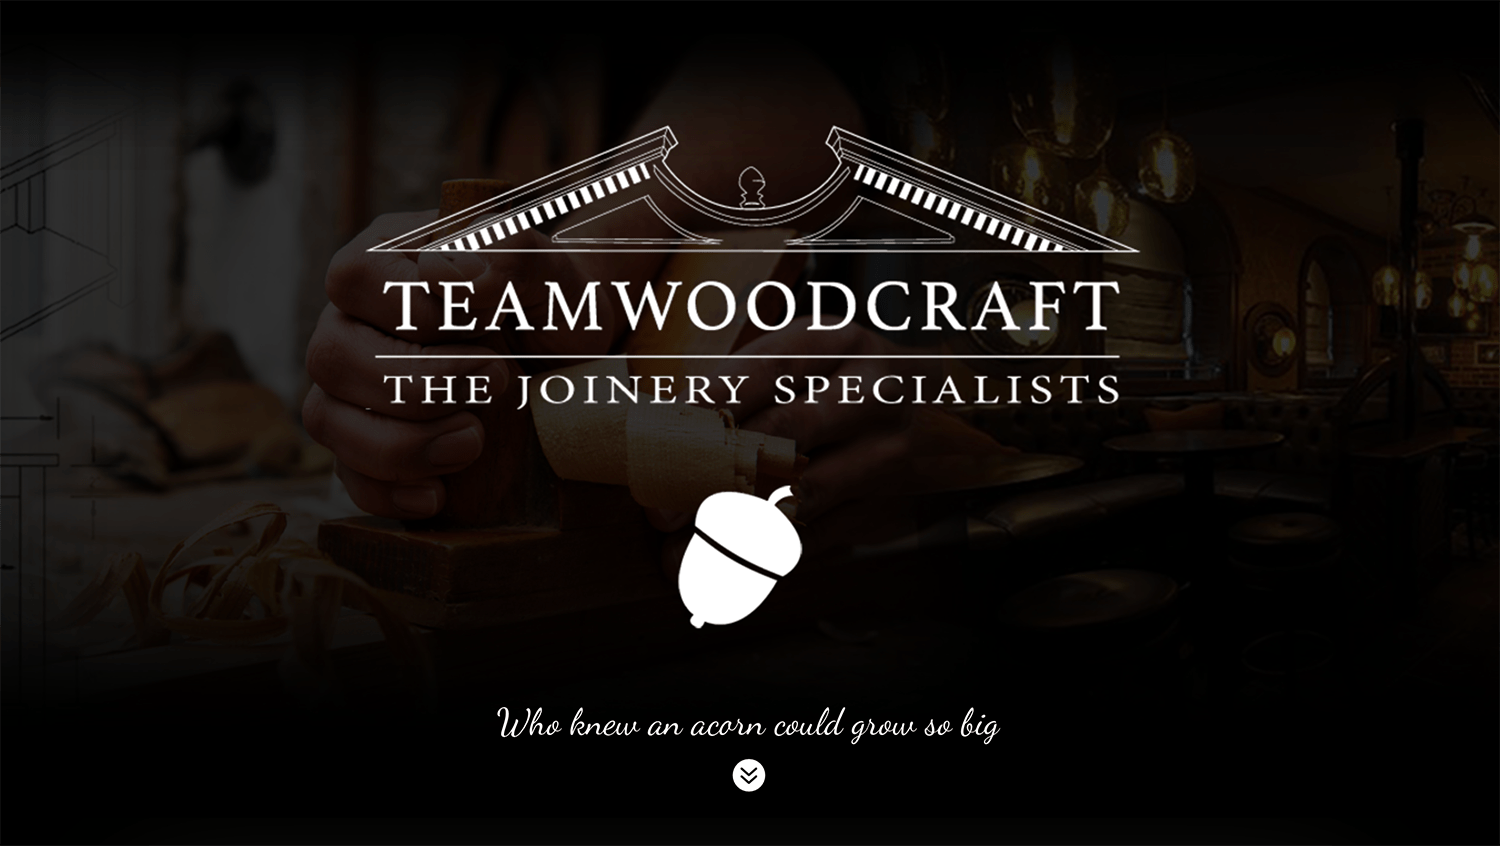 Teamwoodcraft